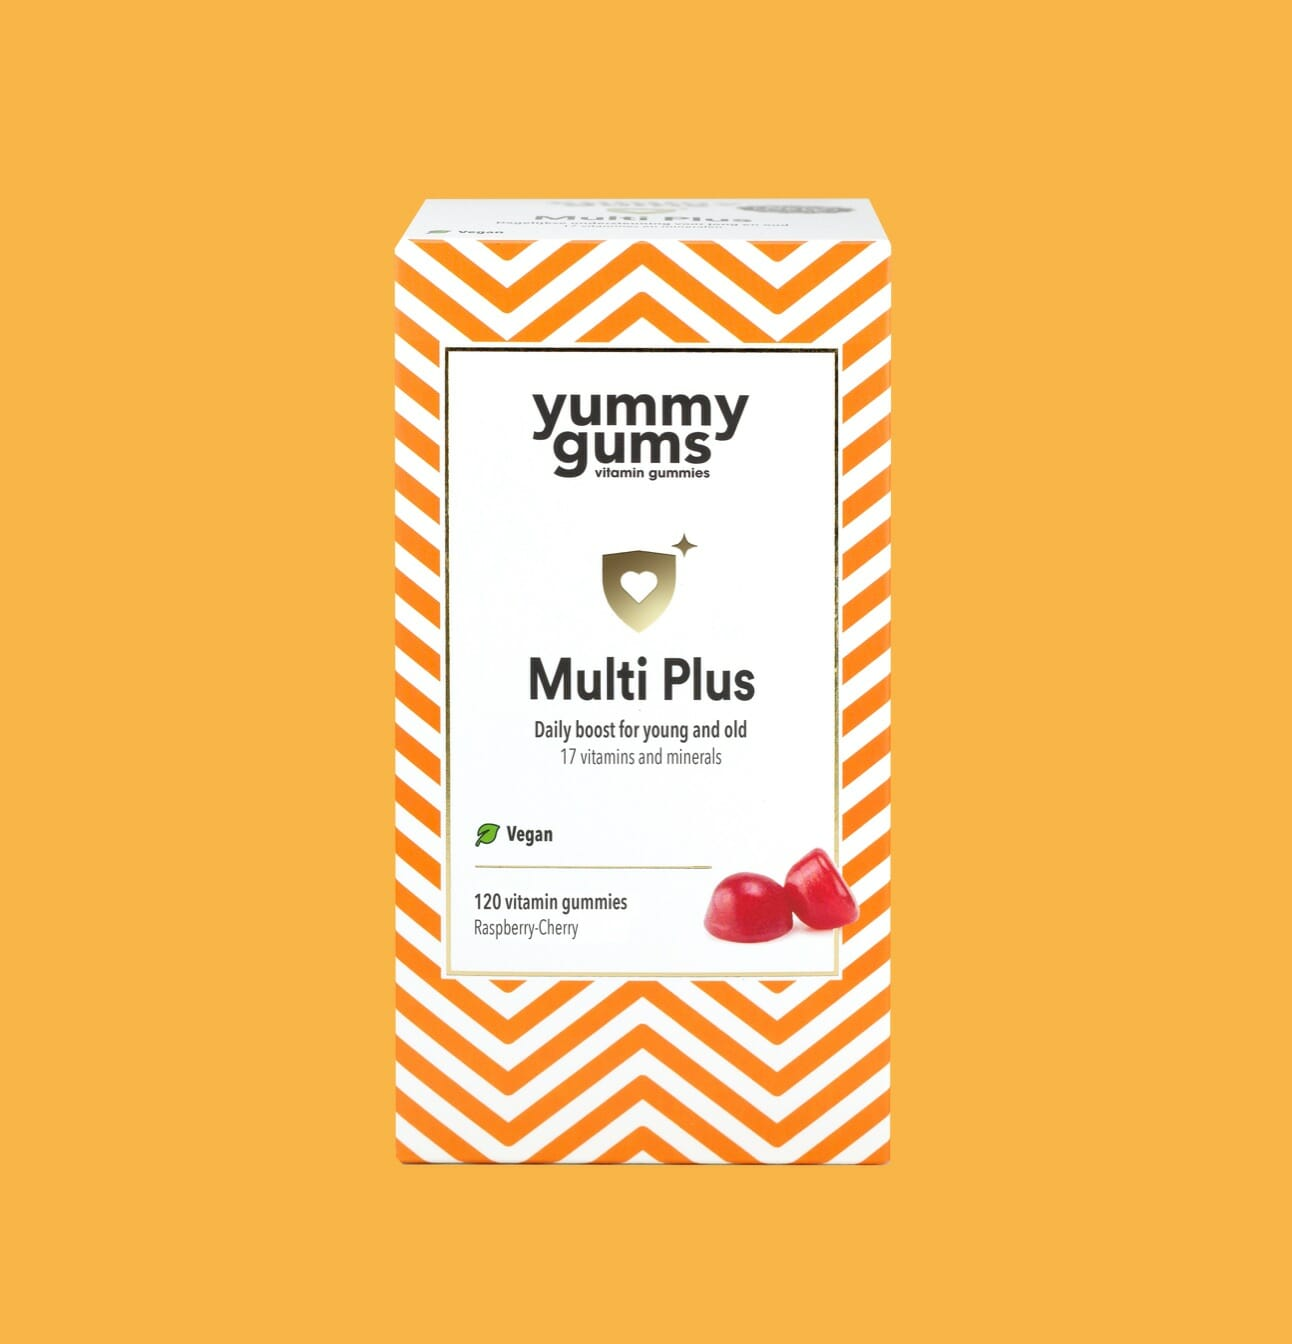 Yummygums Multi Plus - Daily boost for young and old with 17 vitamins and minerals and 100% Vegan